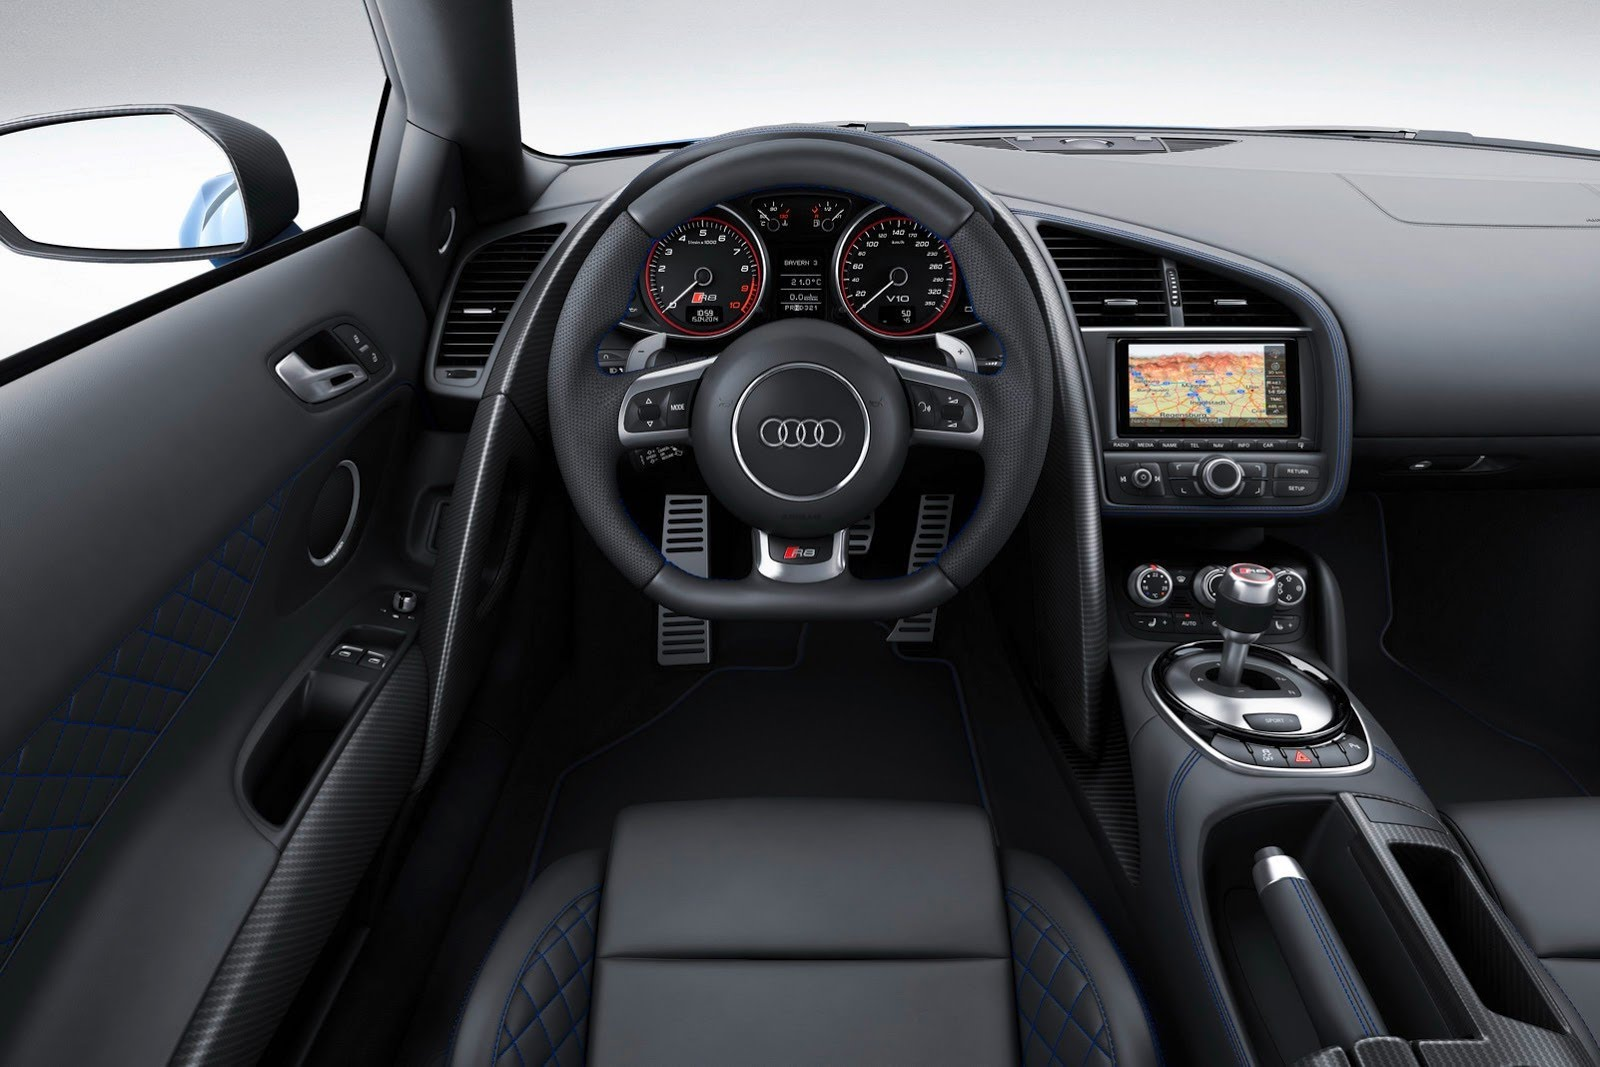 Audi r8 2015 interior images for Images of interior